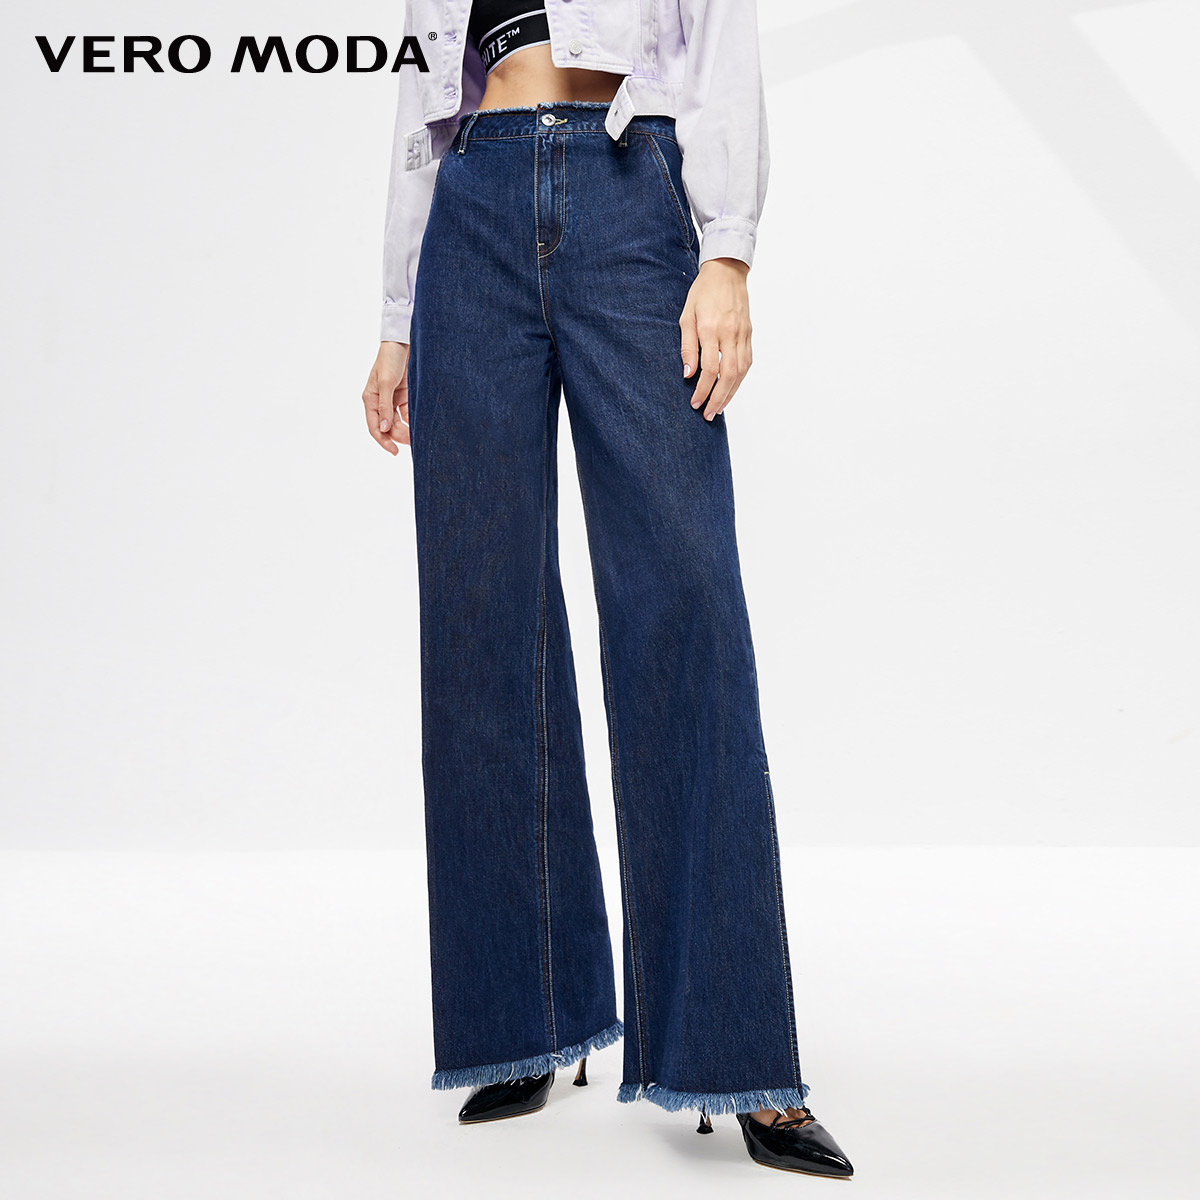 Vero Moda Women's 100% Cotton High-rise Washed Raw-edge Wide-leg Jeans | 319332512